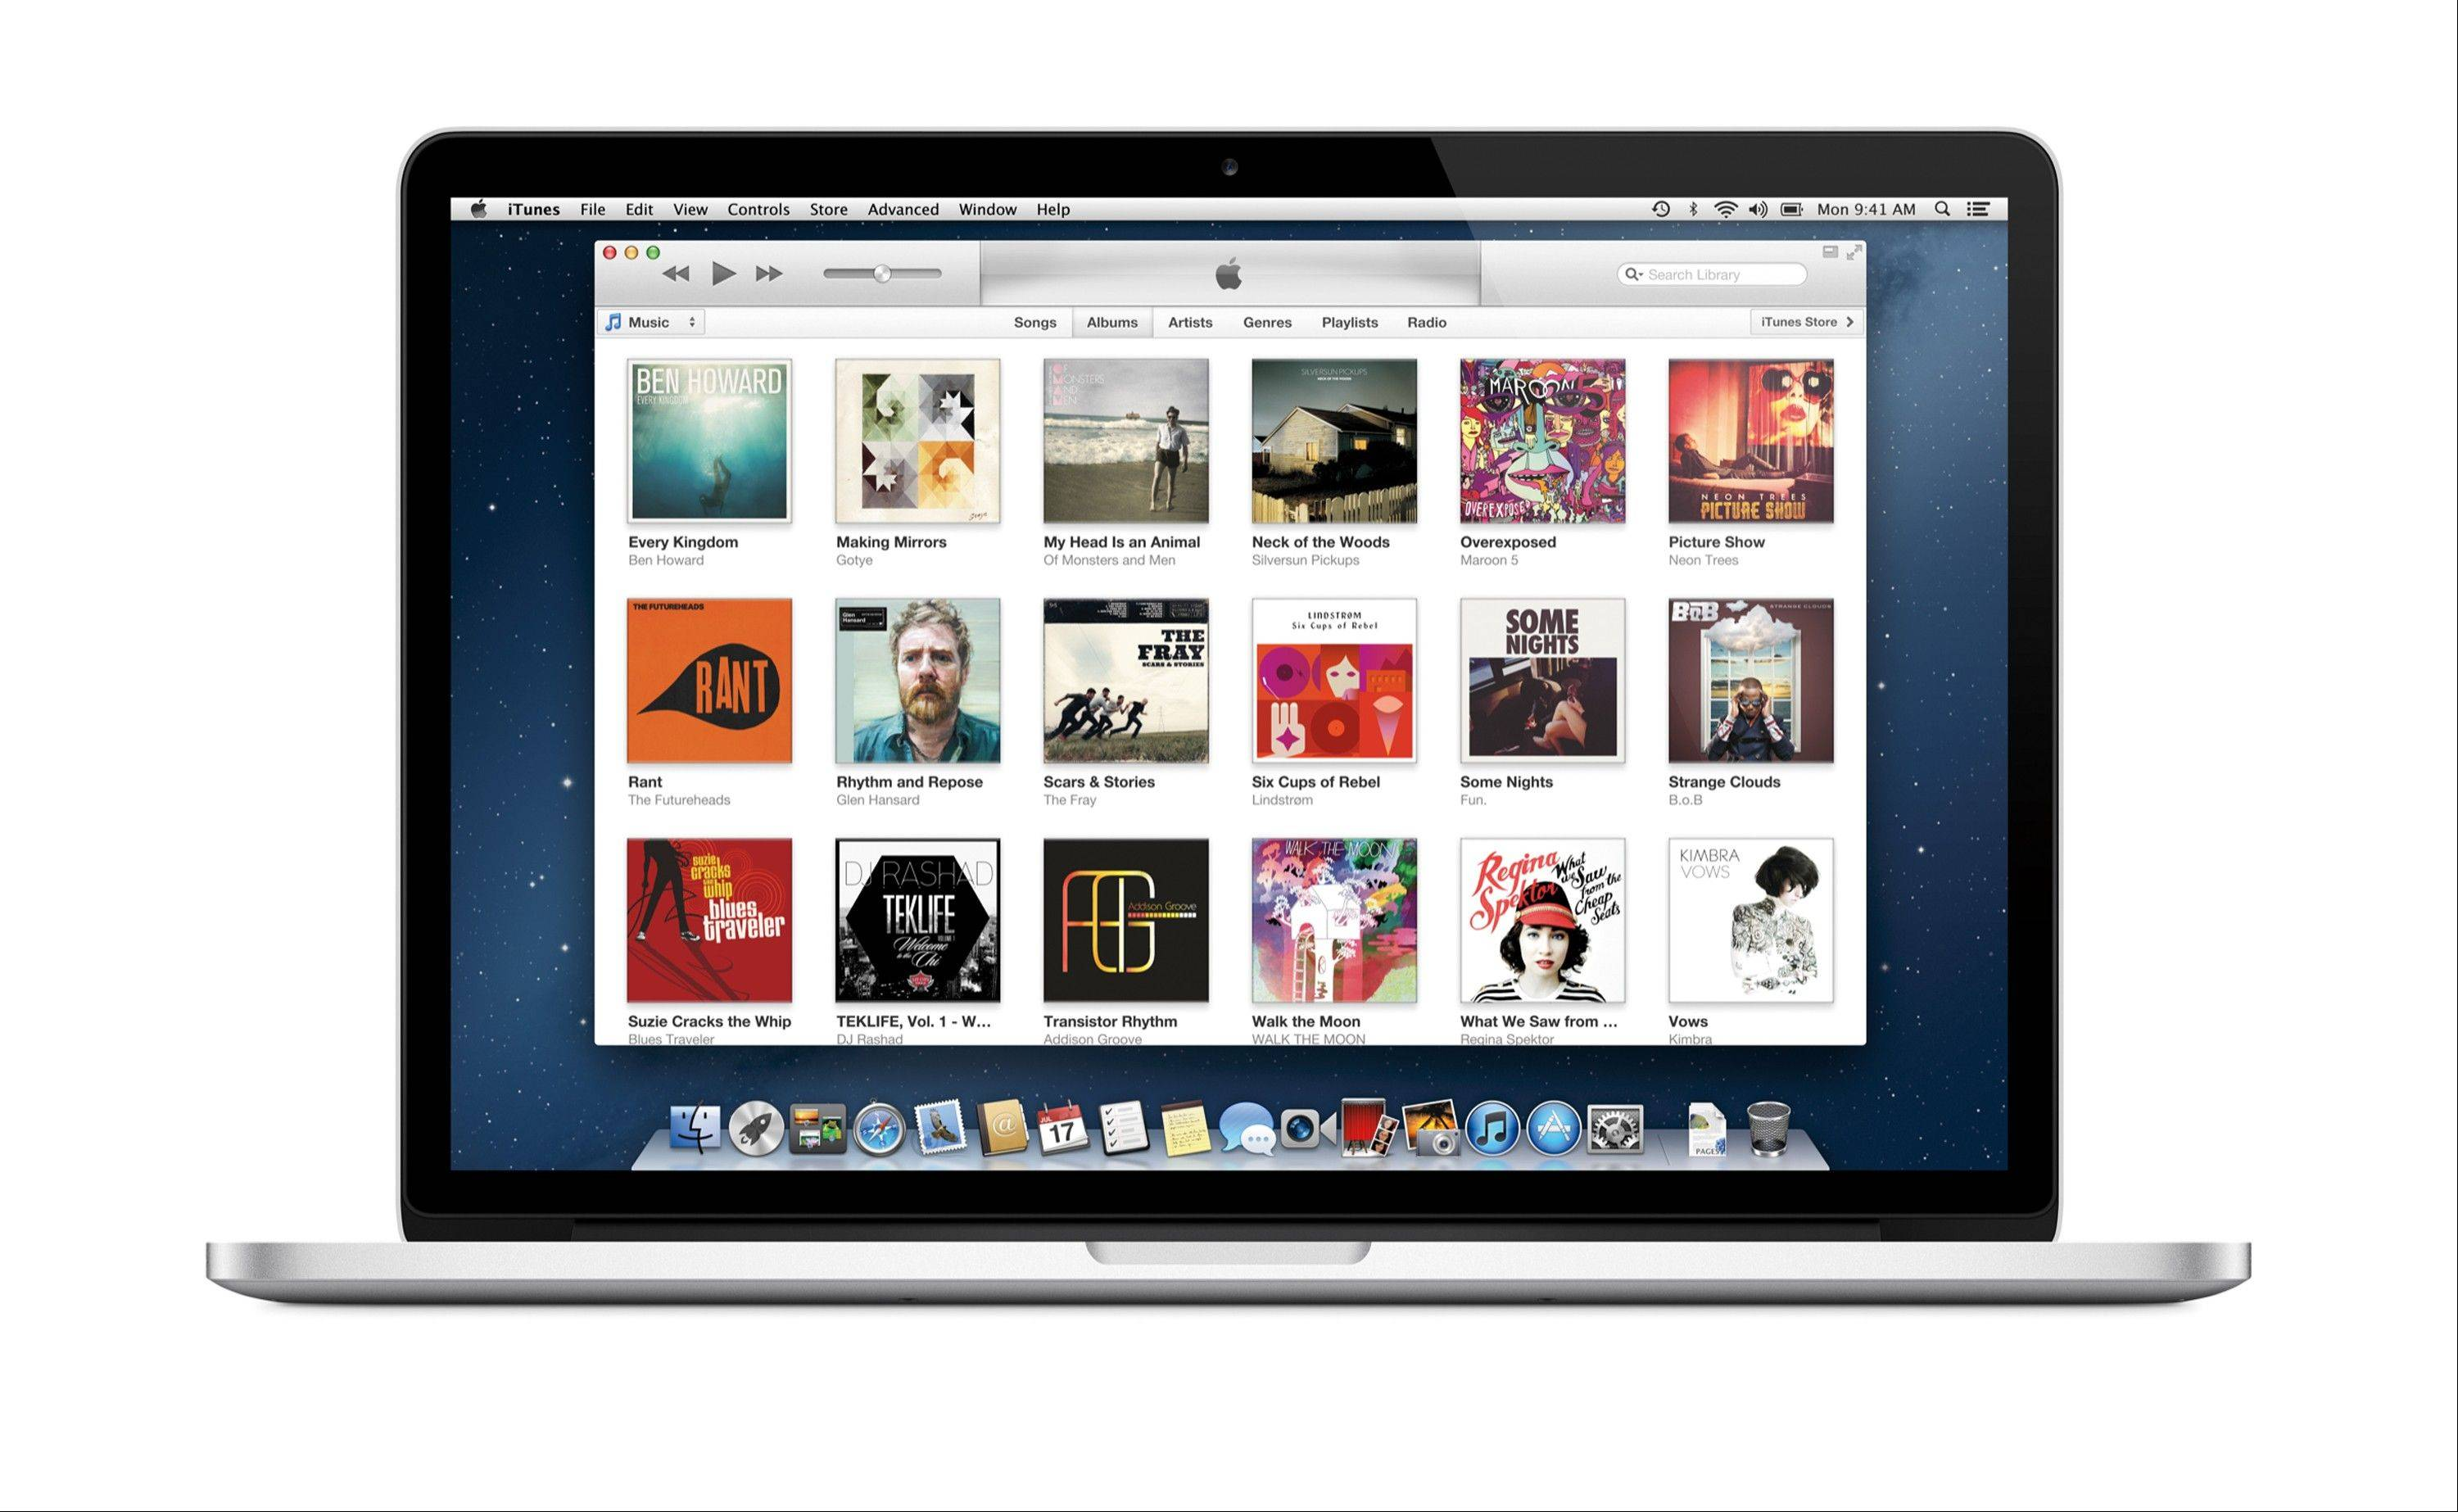 The iTunes music store changed how we consume music and access entertainment. It's not only music's biggest retailer, it also dominates the digital video market, capturing 67 percent of the TV show sale market and 65 percent of the movie sale market, according to information company NPD group.